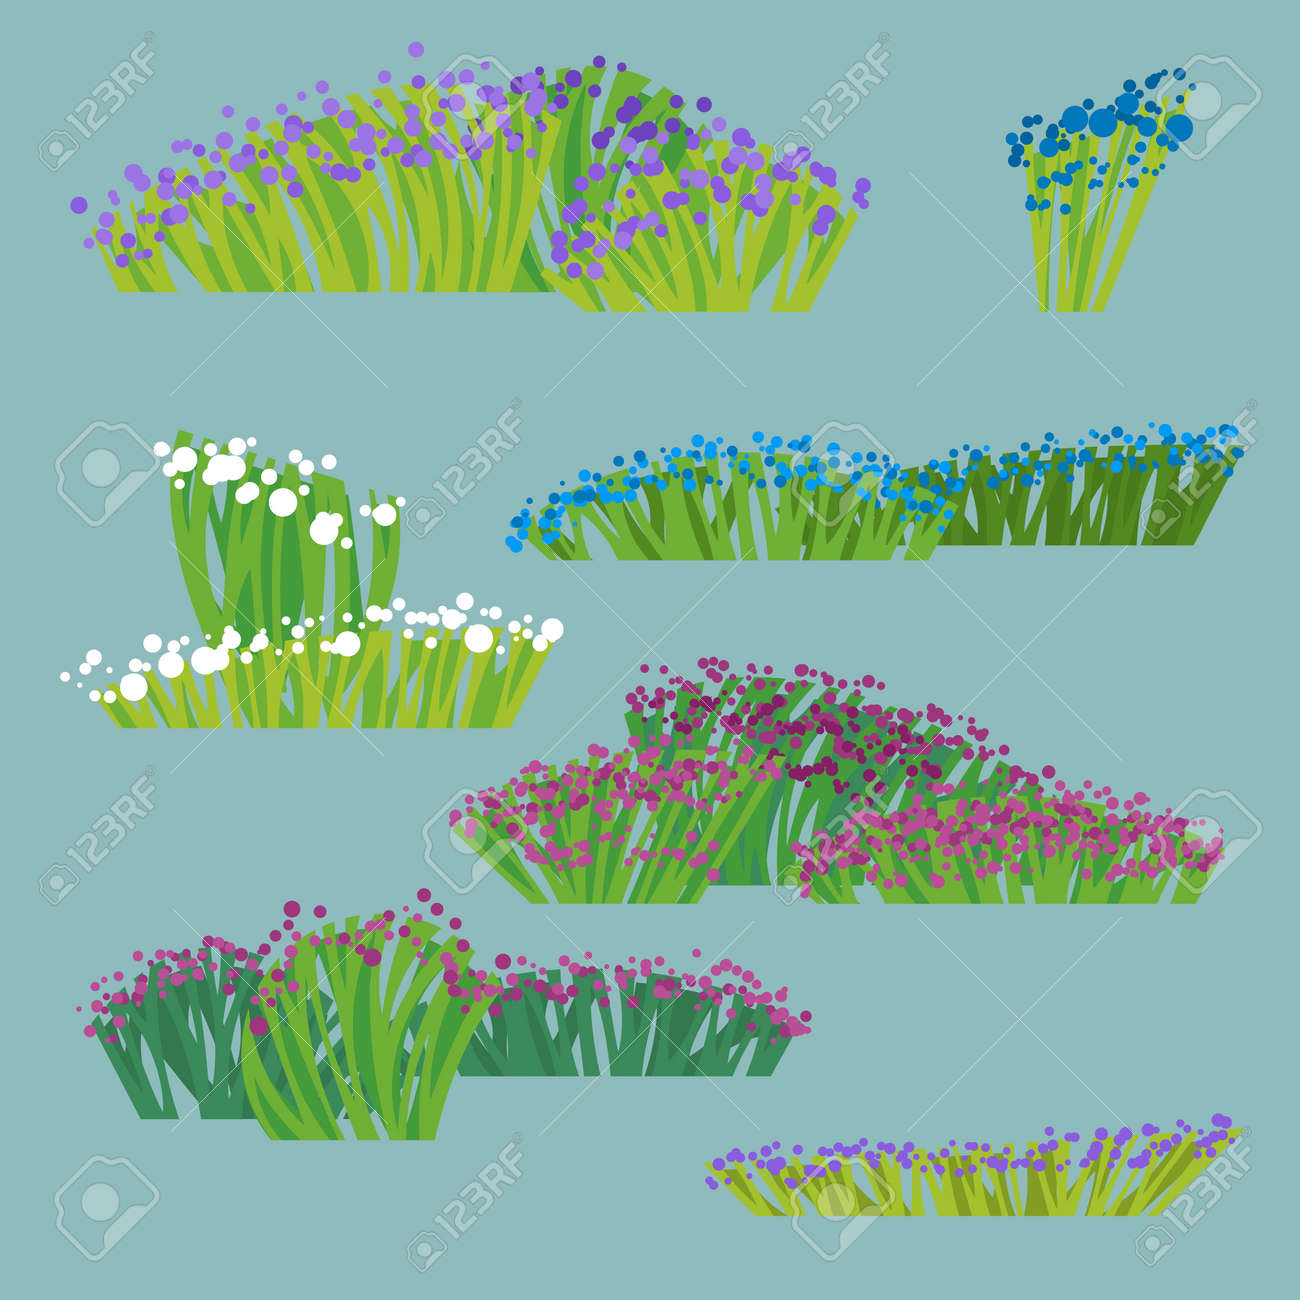 Collection Of Drawings Of Stylized Flowering Grass And Bushes